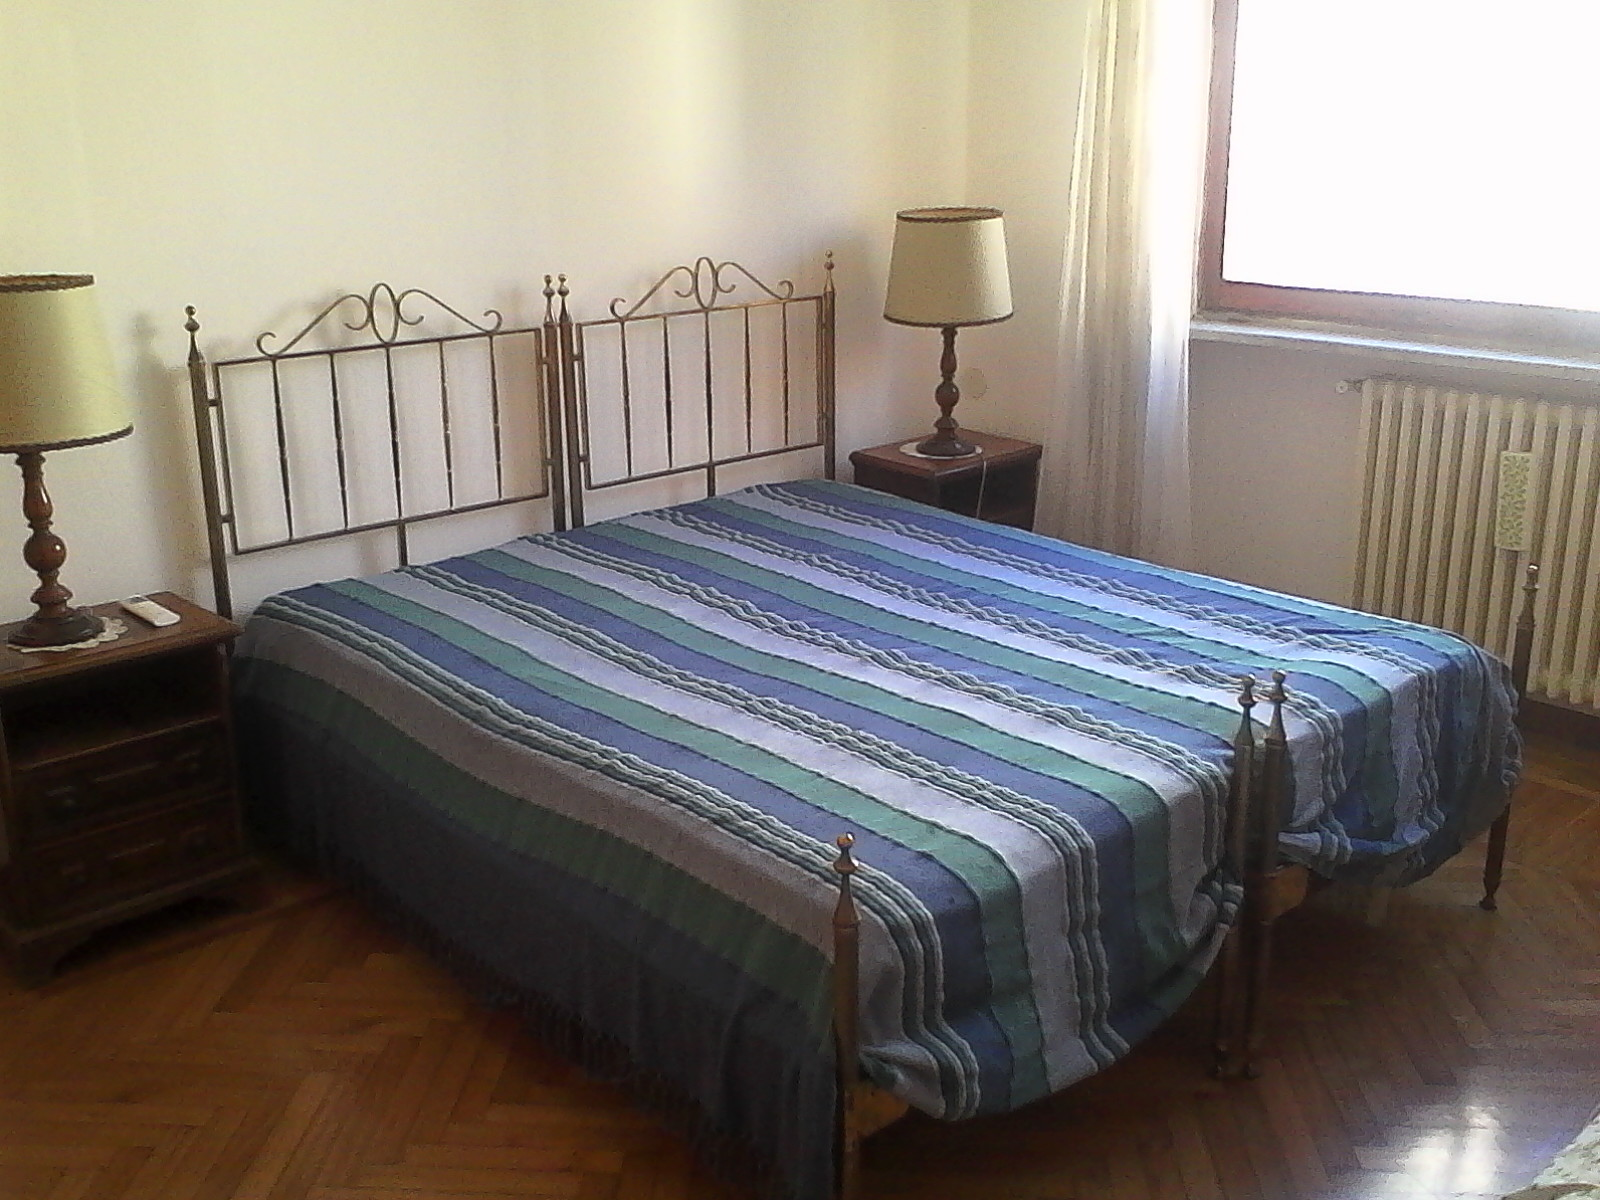 Armadio Camera Letto Matrimoniale.Room For Rent In 3 Bedroom Apartment In Latina Girls Only And With